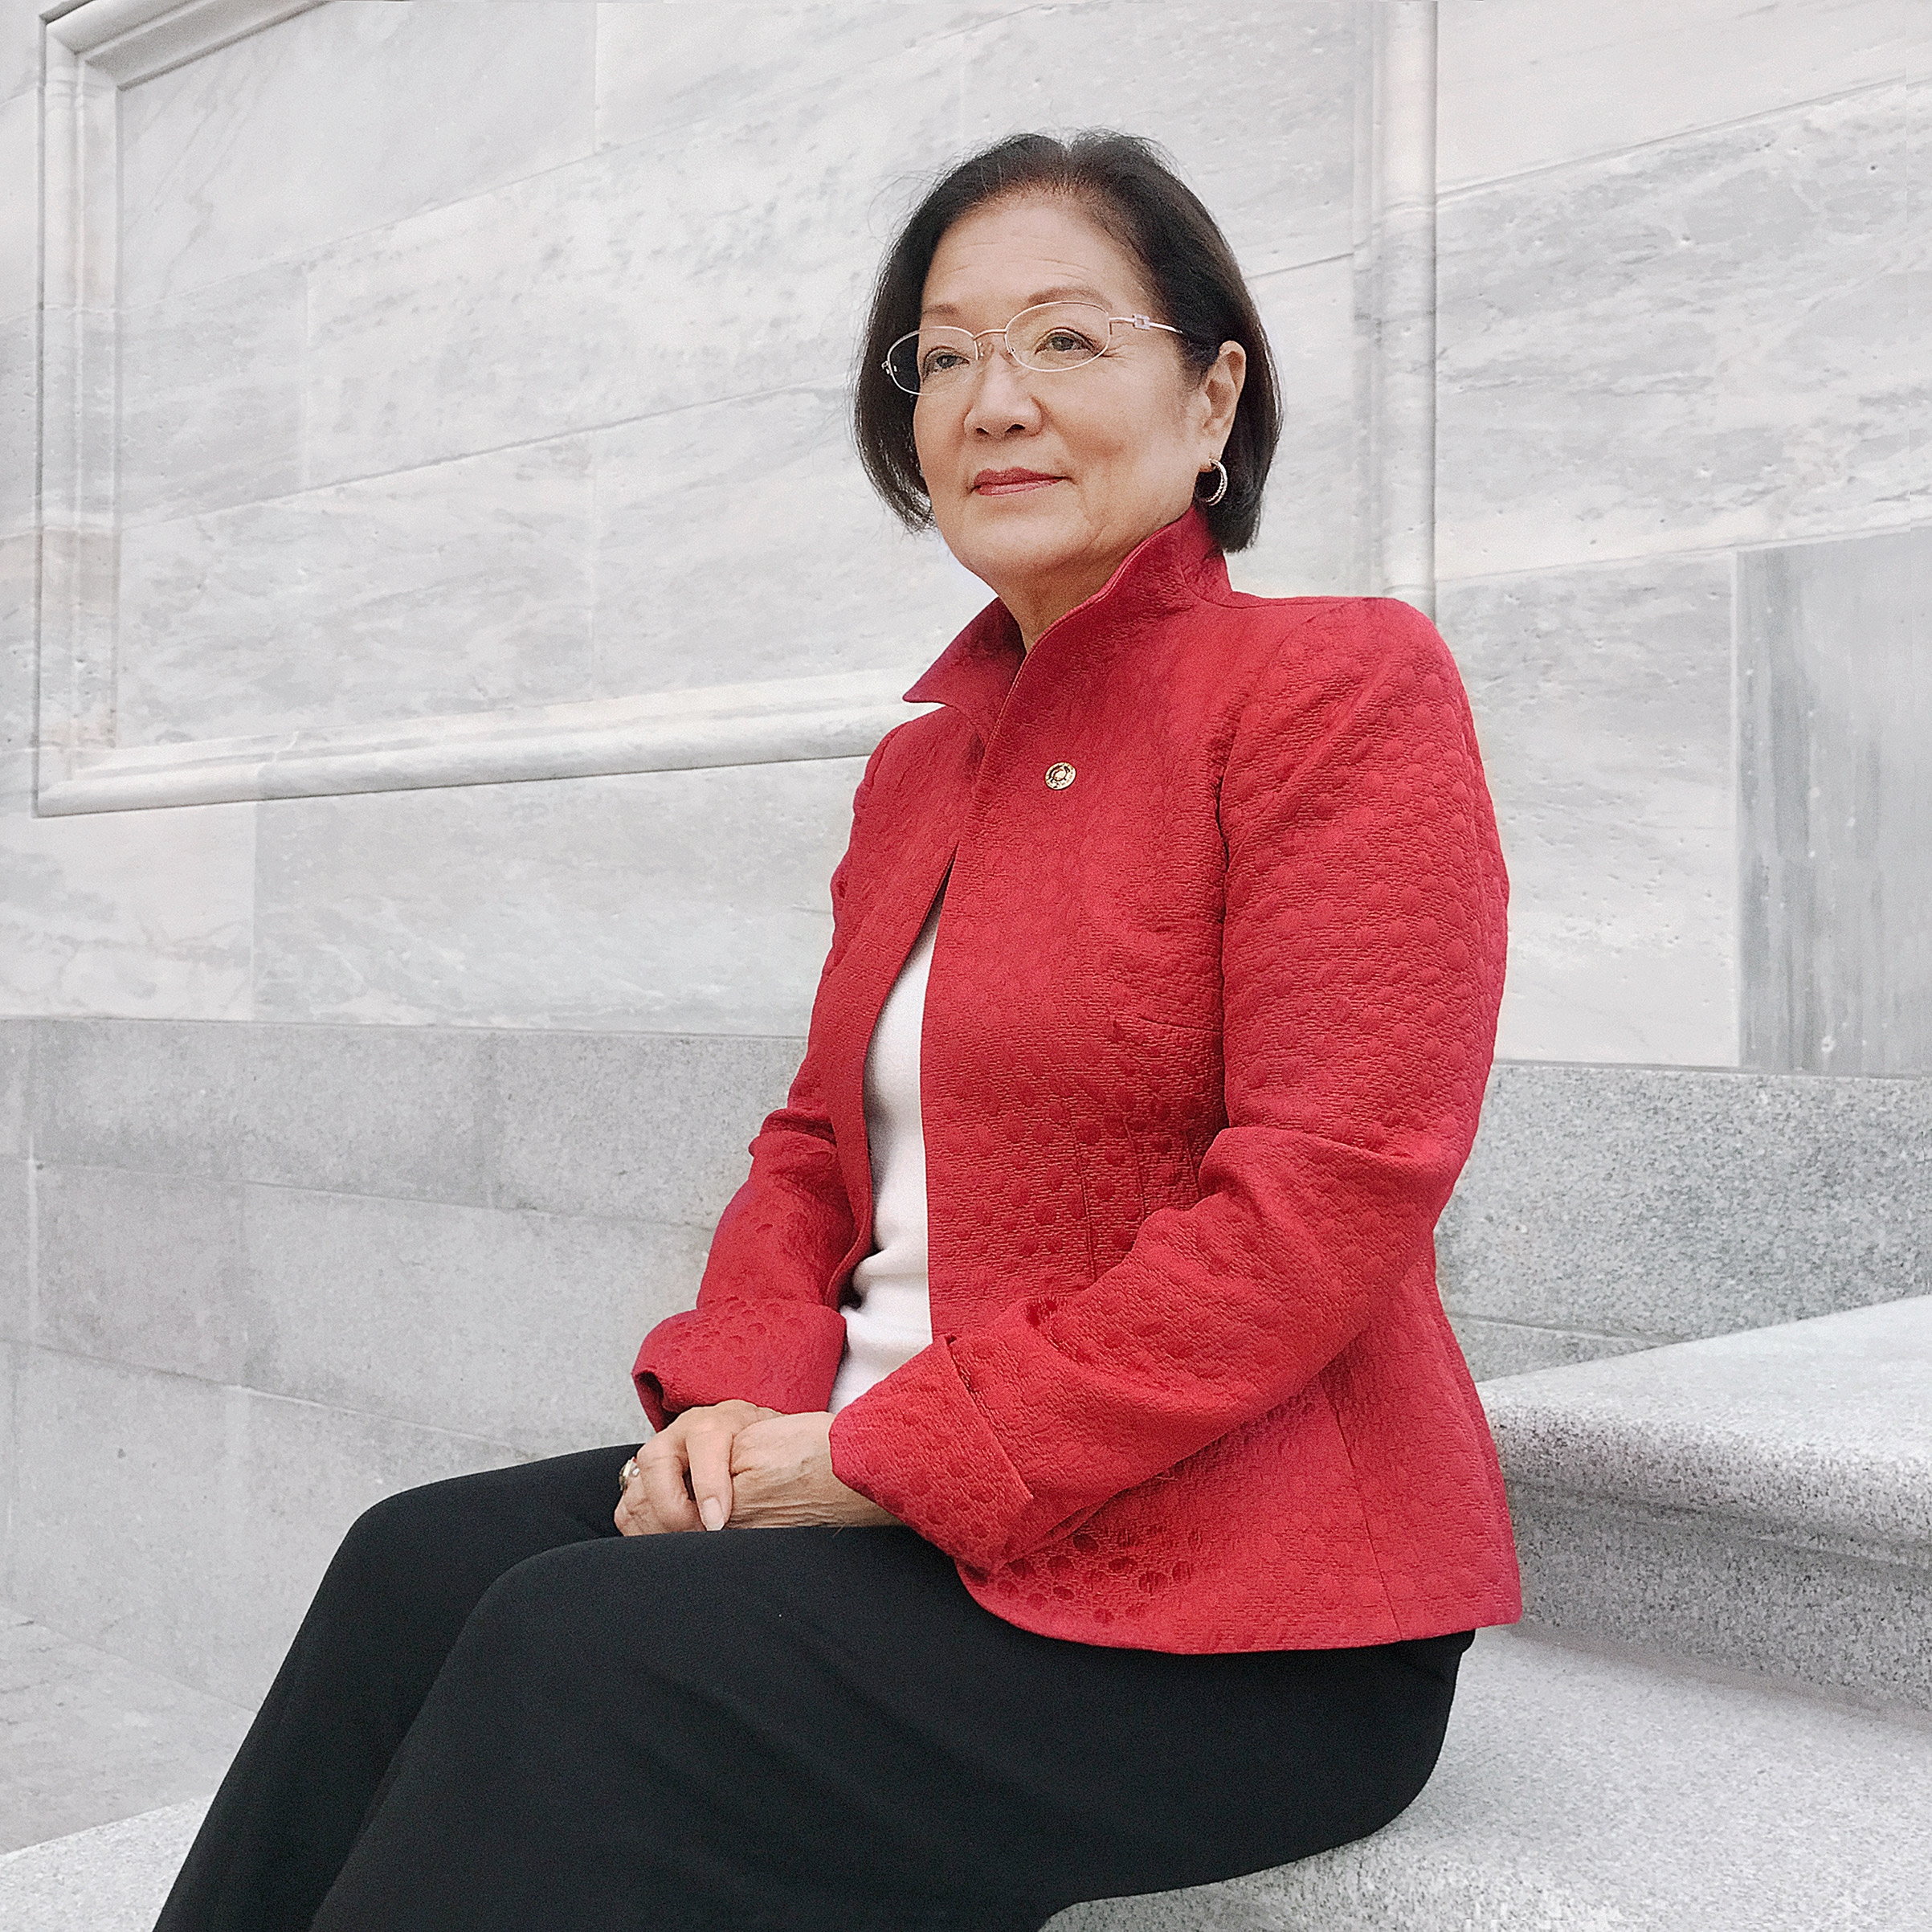 Portrait of Senator Mazie Hirono, photographed on the steps of The Capitol, Washington, D.C., October 6, 2016.